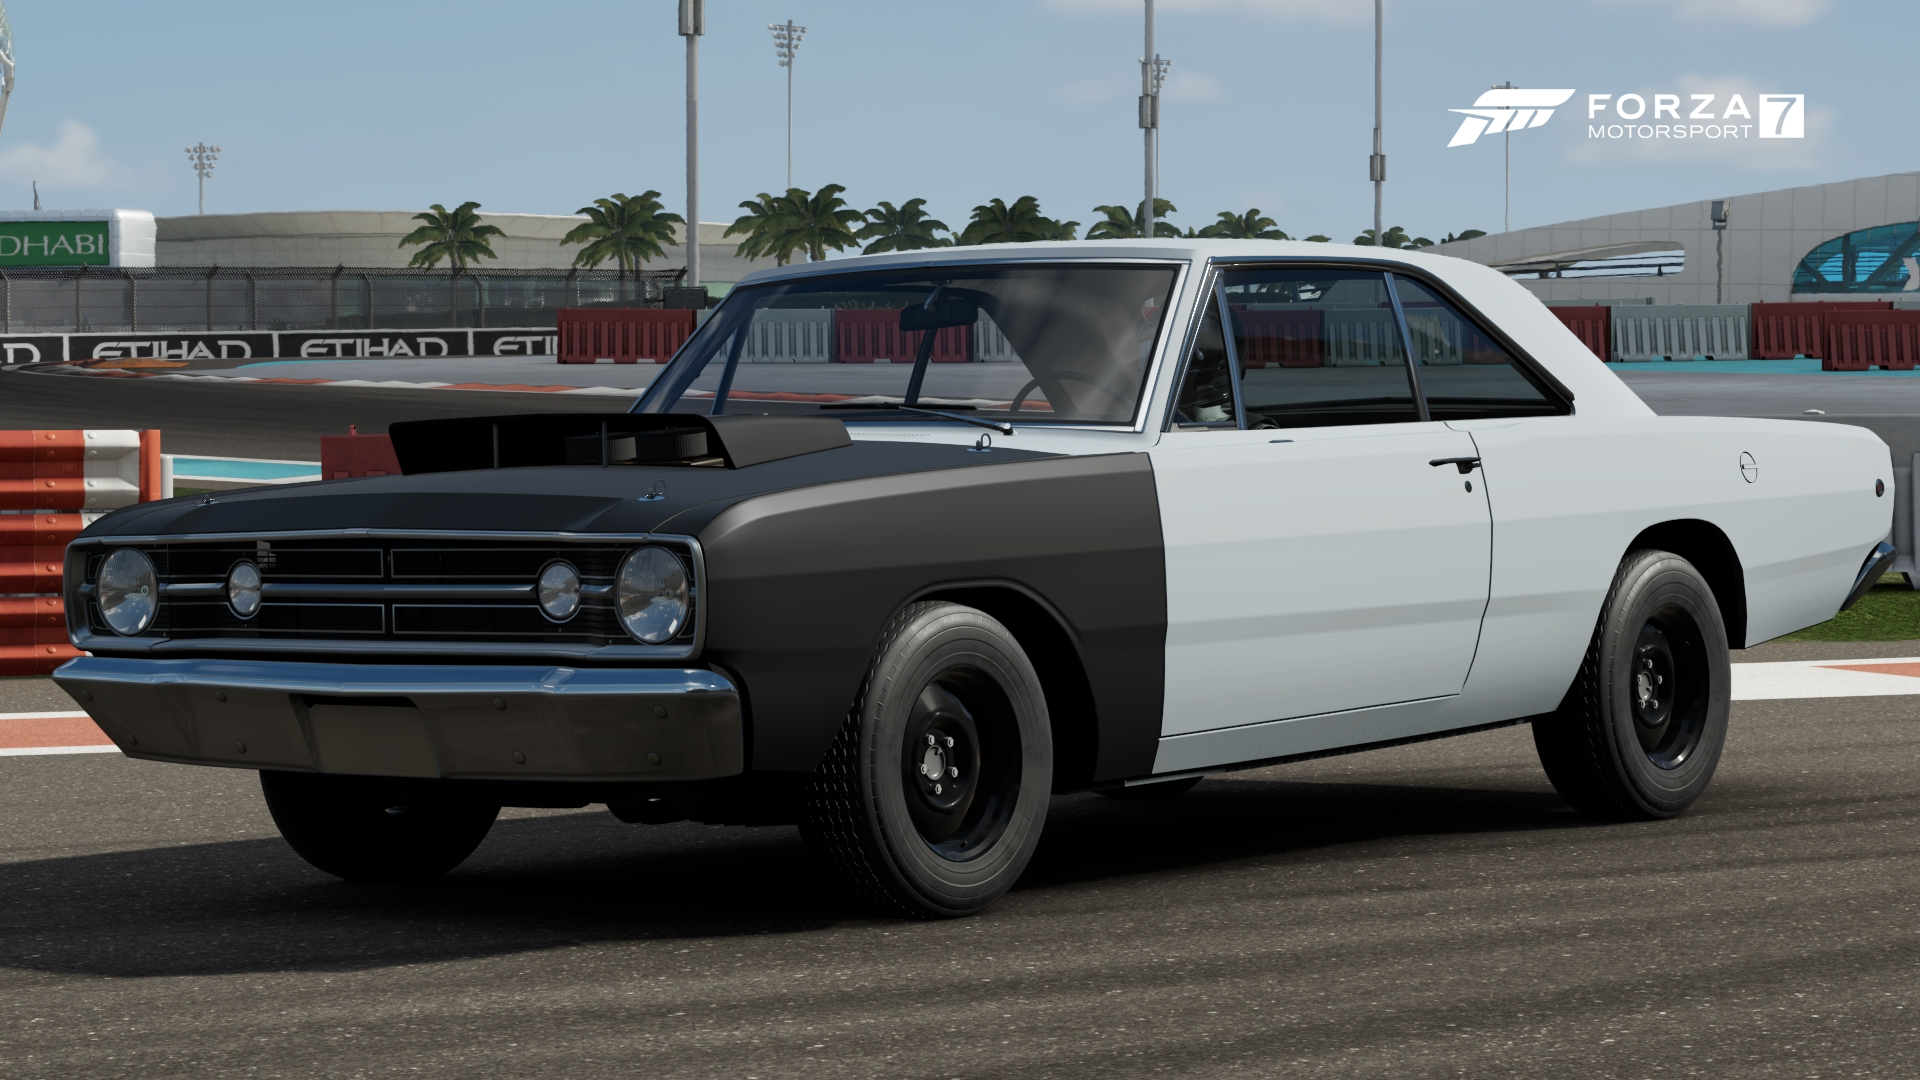 Dodge Dart Hemi Super Stock | Forza Motorsport Wiki | FANDOM powered ...